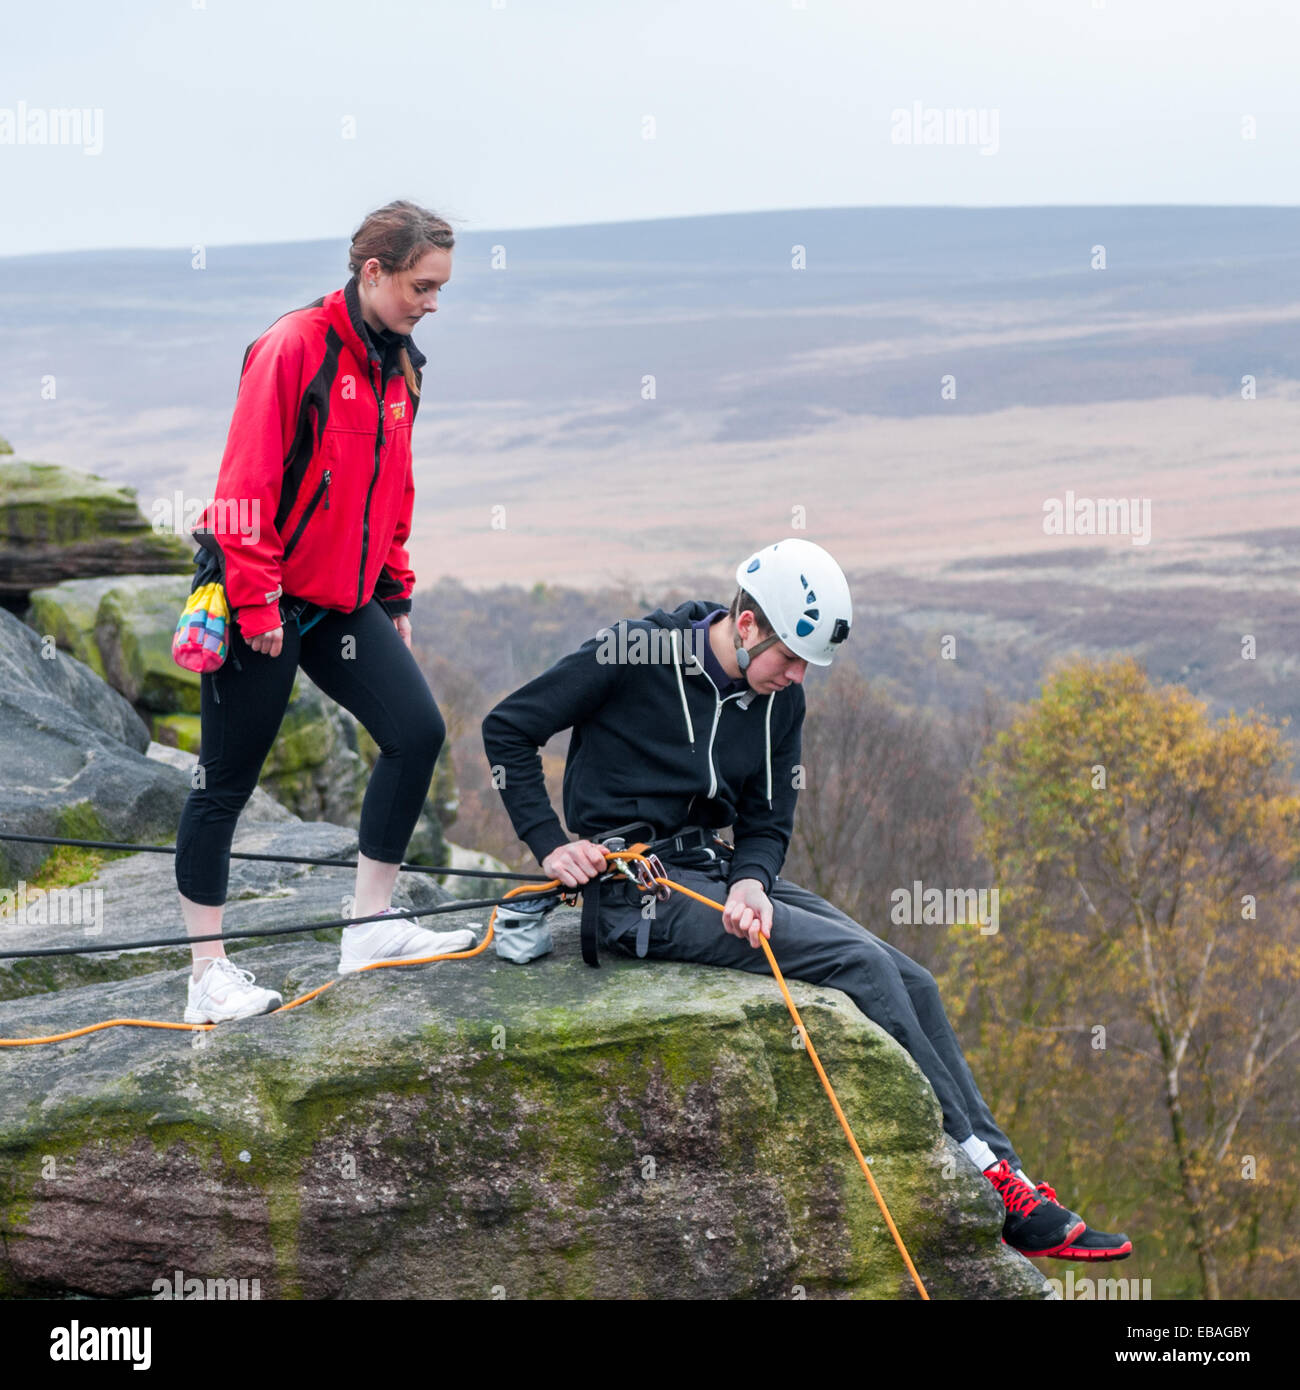 Junge Sportkletterer am birchenfarbig Rand in The Peak District von Derbyshire Stockbild